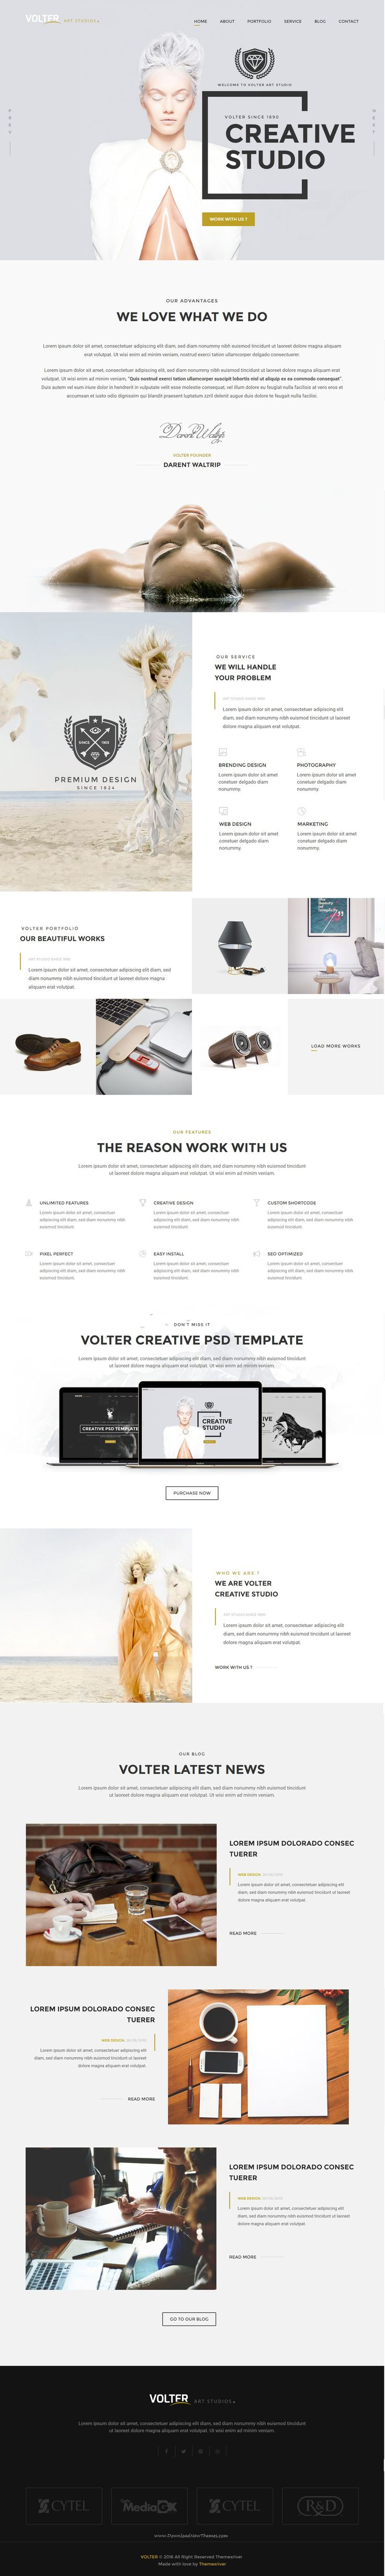 Volter Creative Studios Bootstrap HTML5 Template comes with stunning 4 home variation.